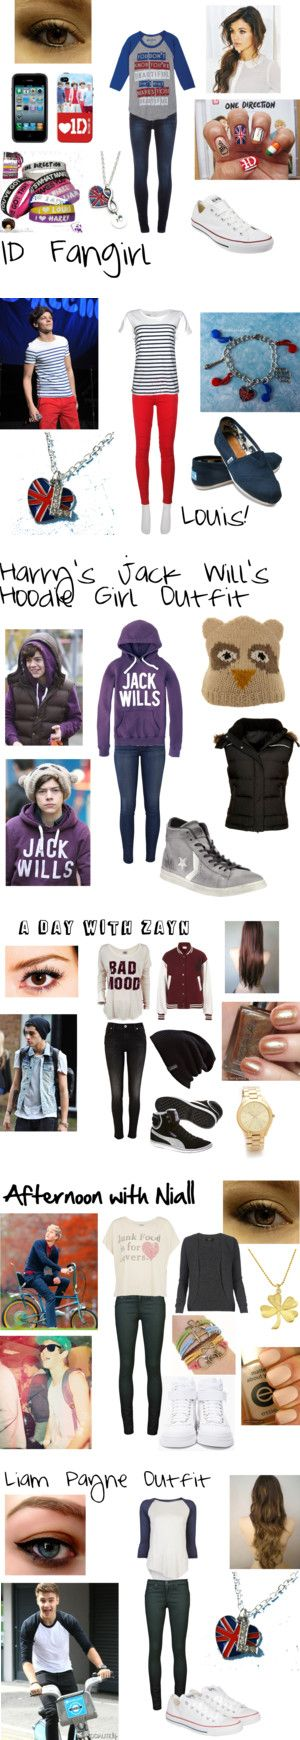 """""""One Direction Outfits!!"""" by sofianedu ❤ liked on Polyvore"""